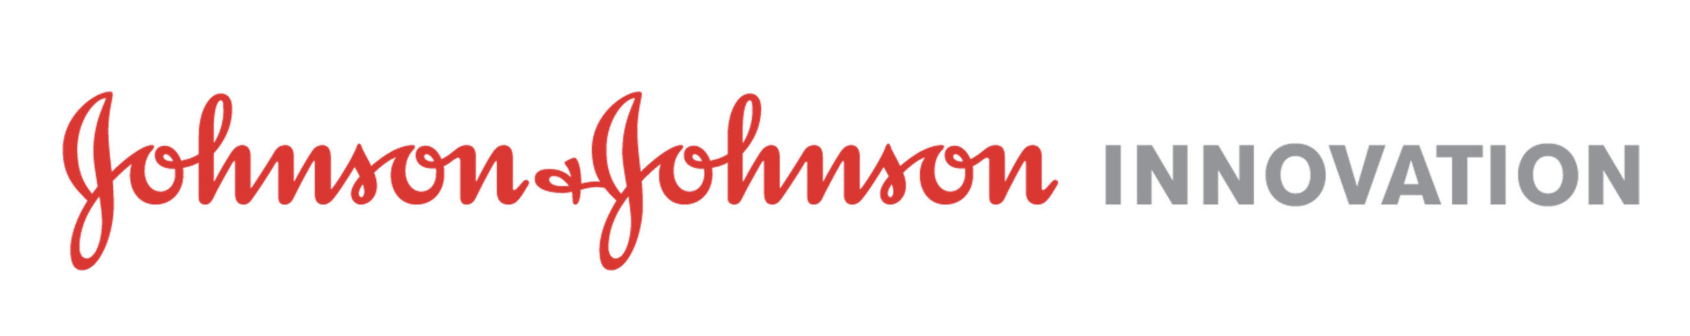 JNJ Innovation.png